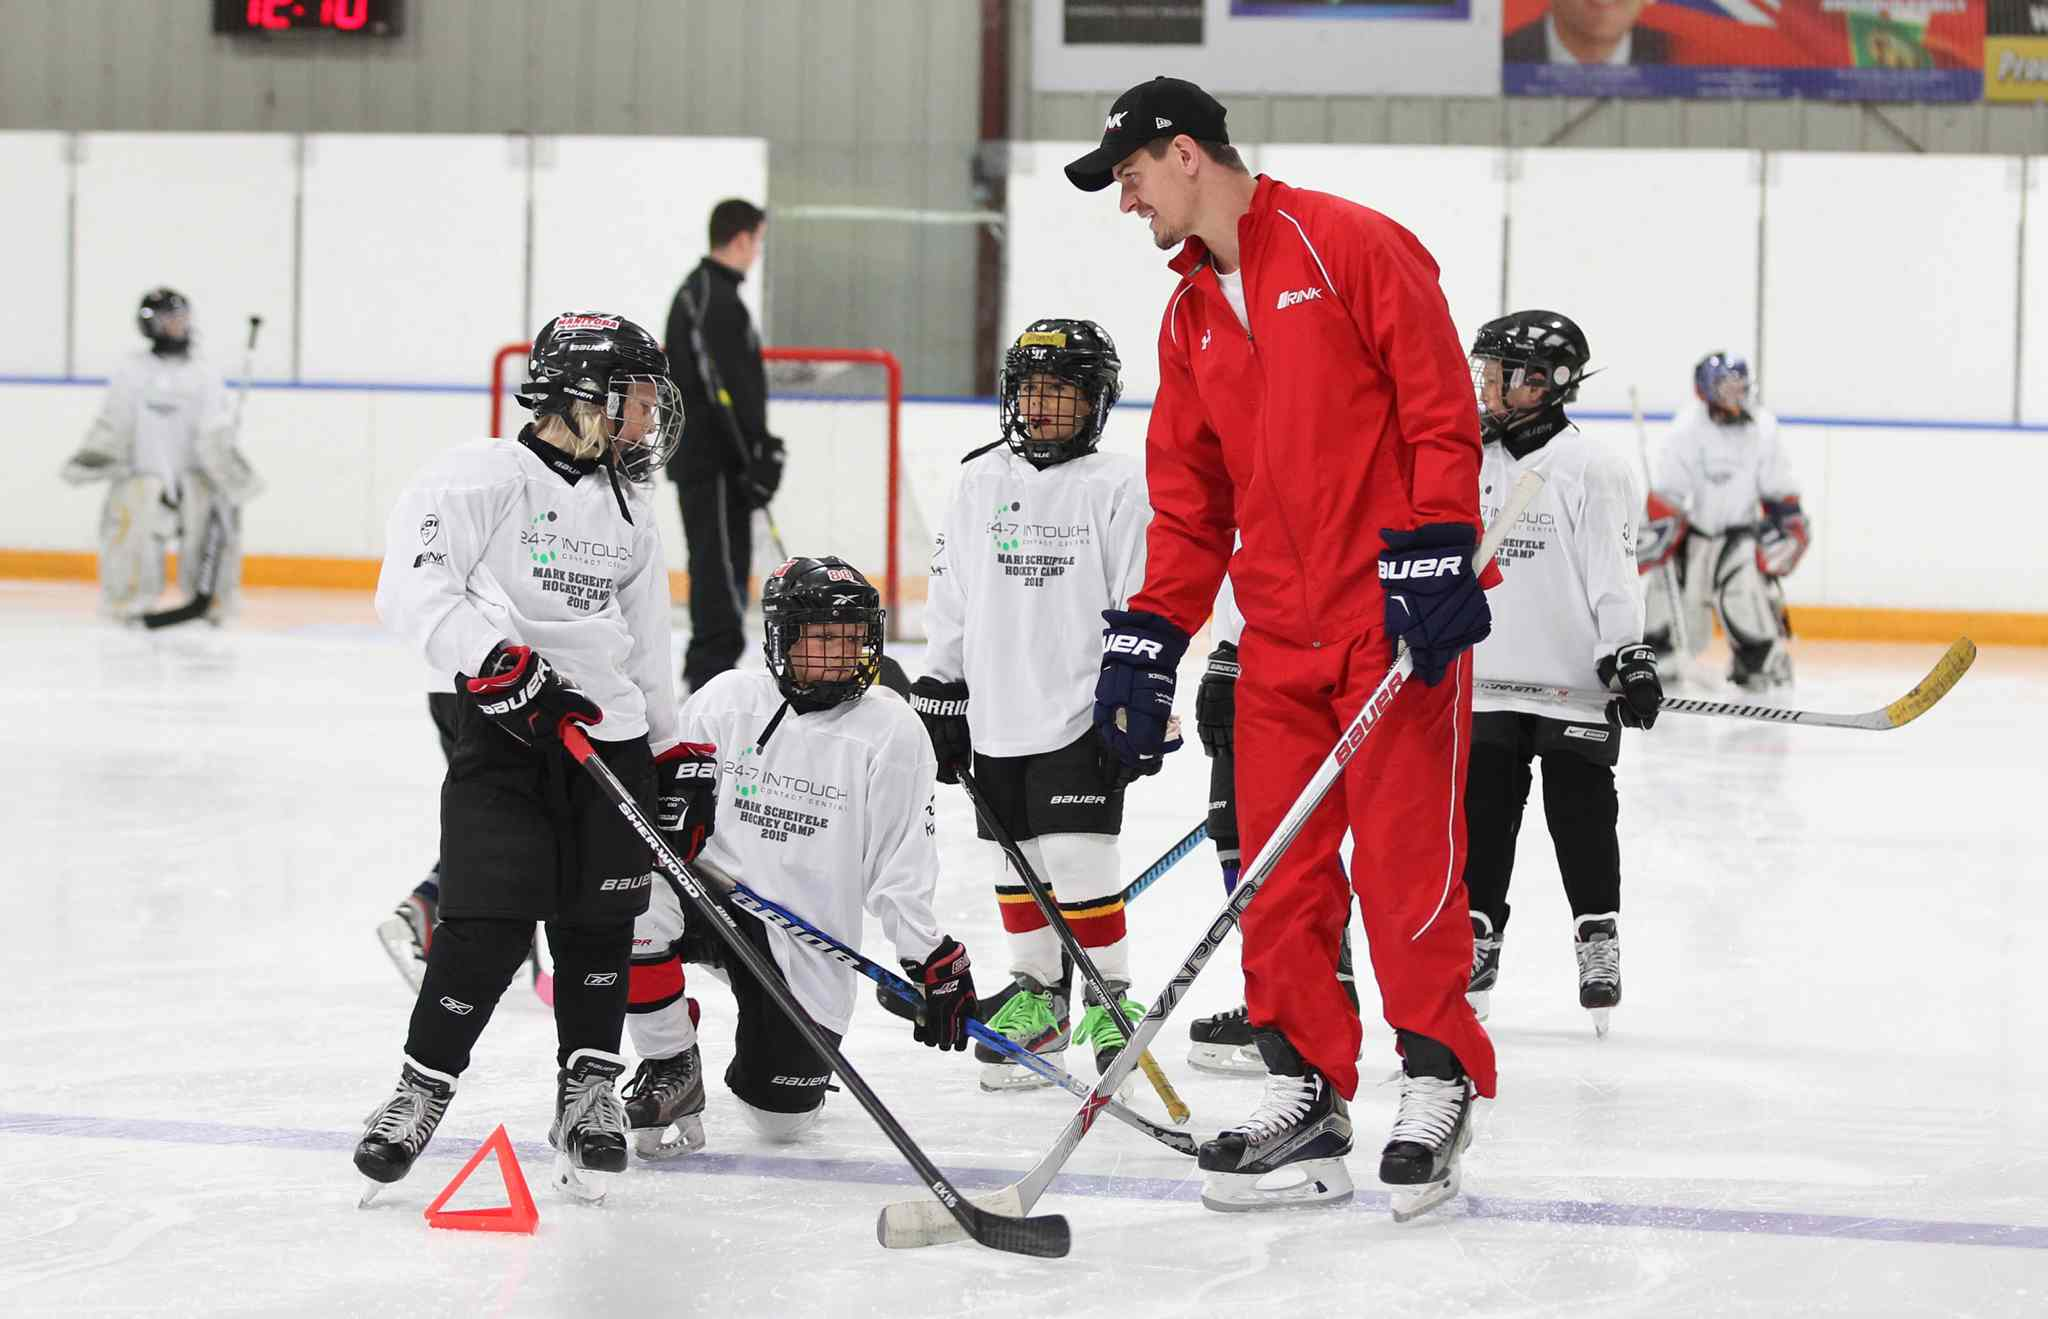 Winnipeg Jets hockey star player Mark Scheifele works with young hockey players on the ice in a hockey camp at Gateway Recreation Centre Saturday in support of KidSport Winnipeg.